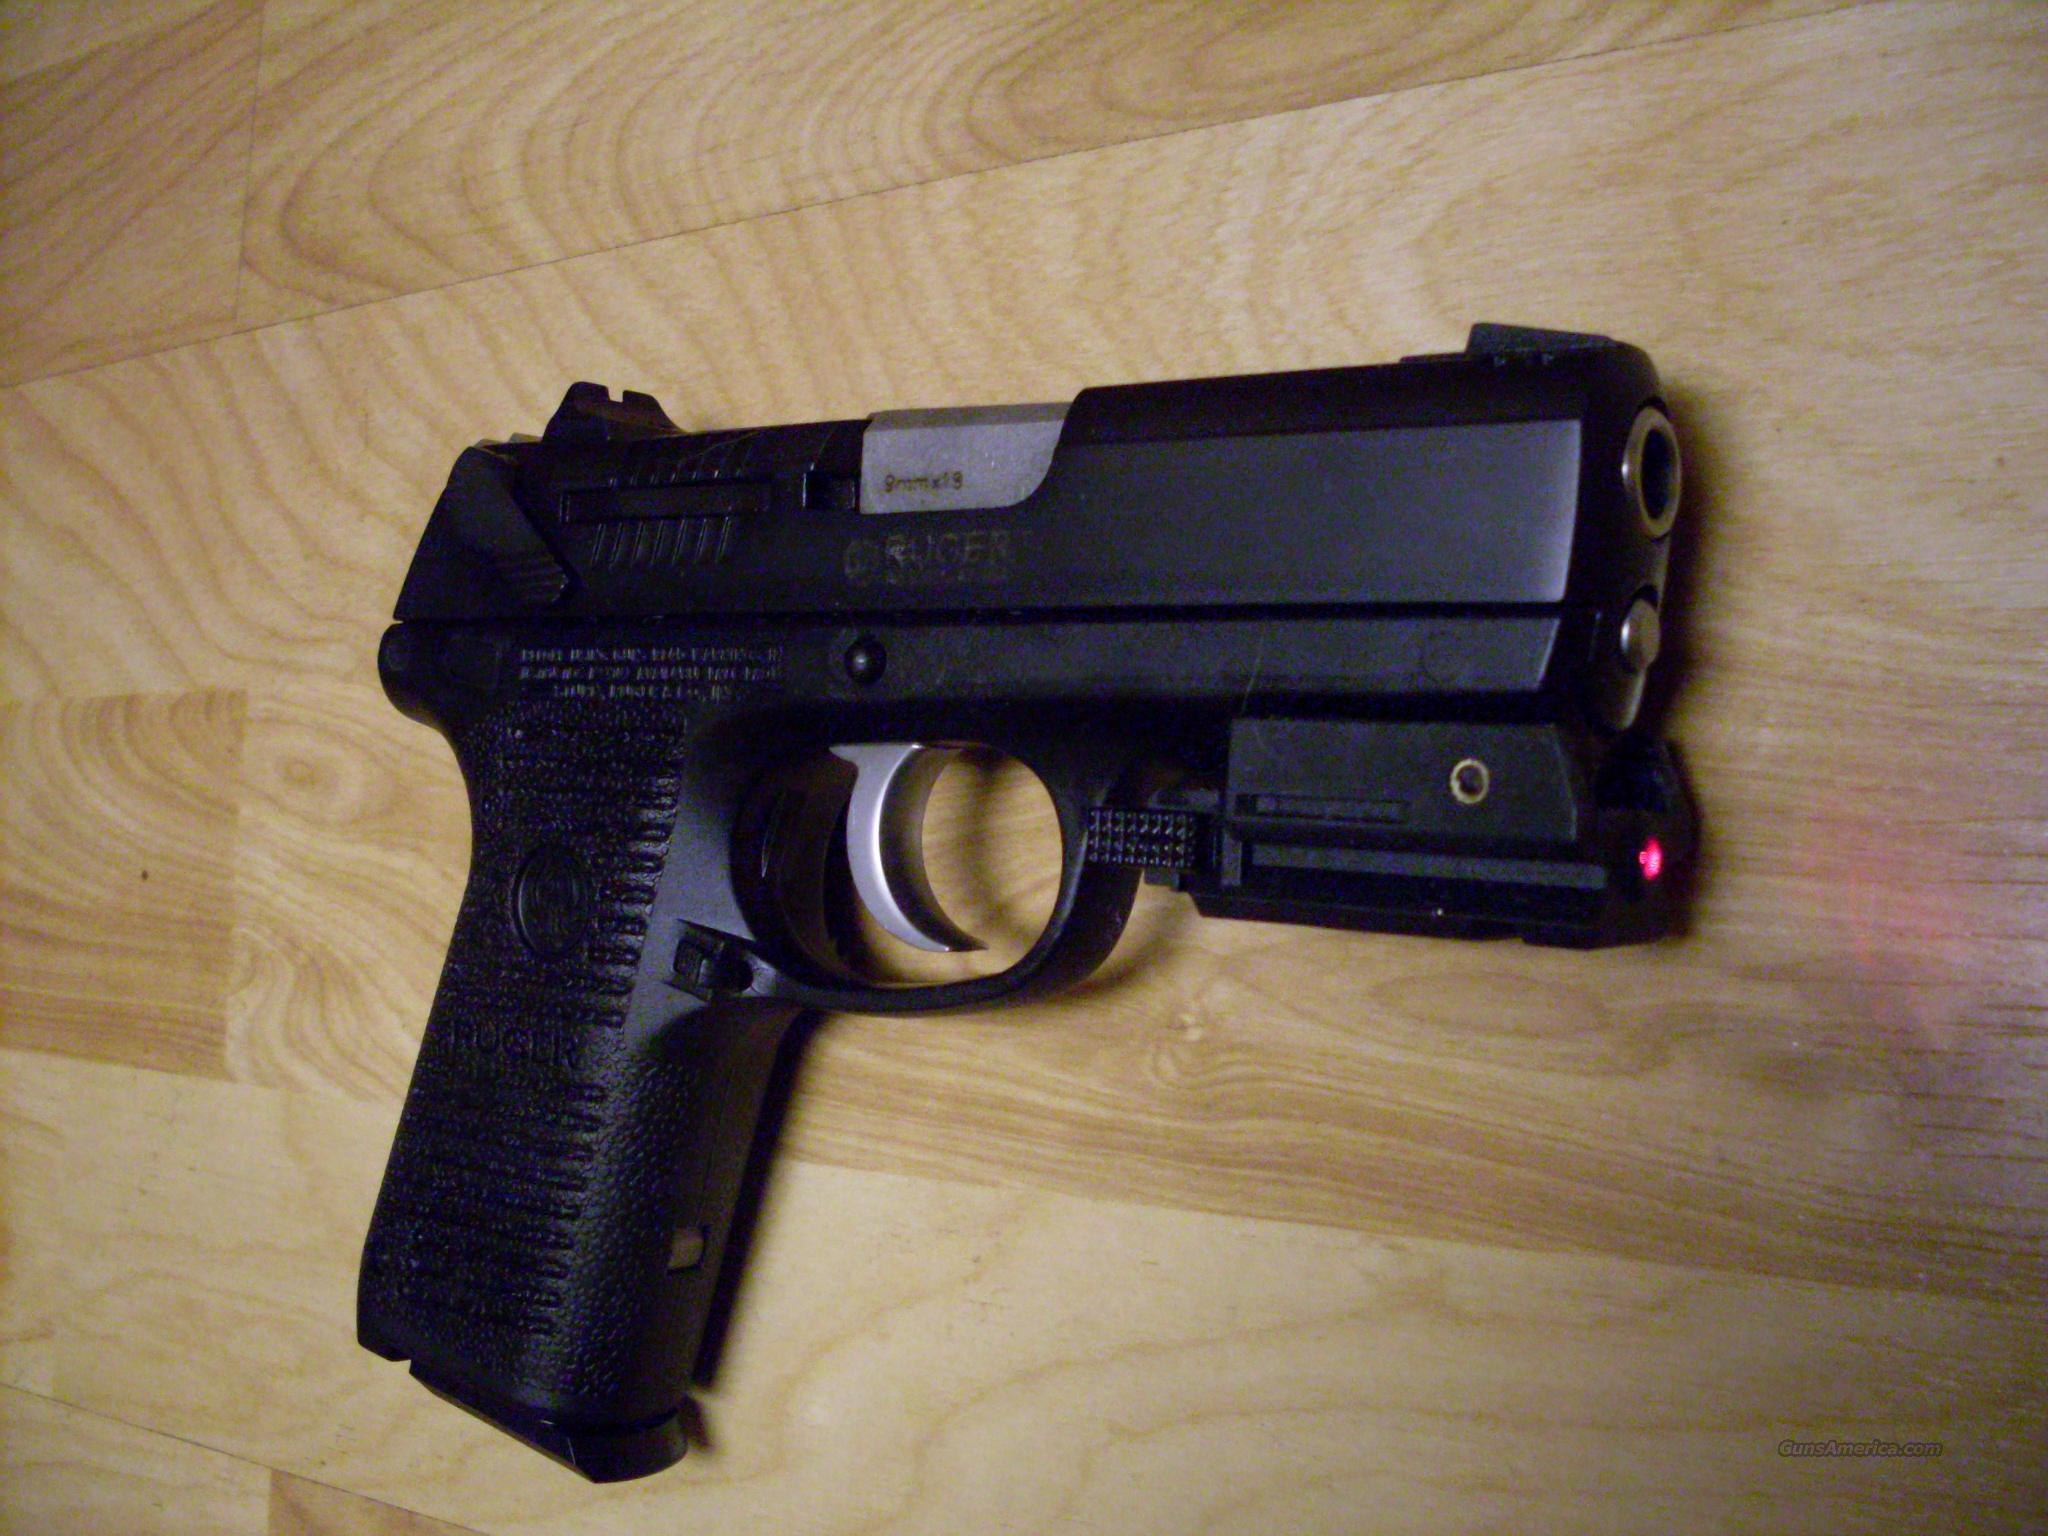 New Ruger P95 9 Mm With Optional Laser Sight For Sale